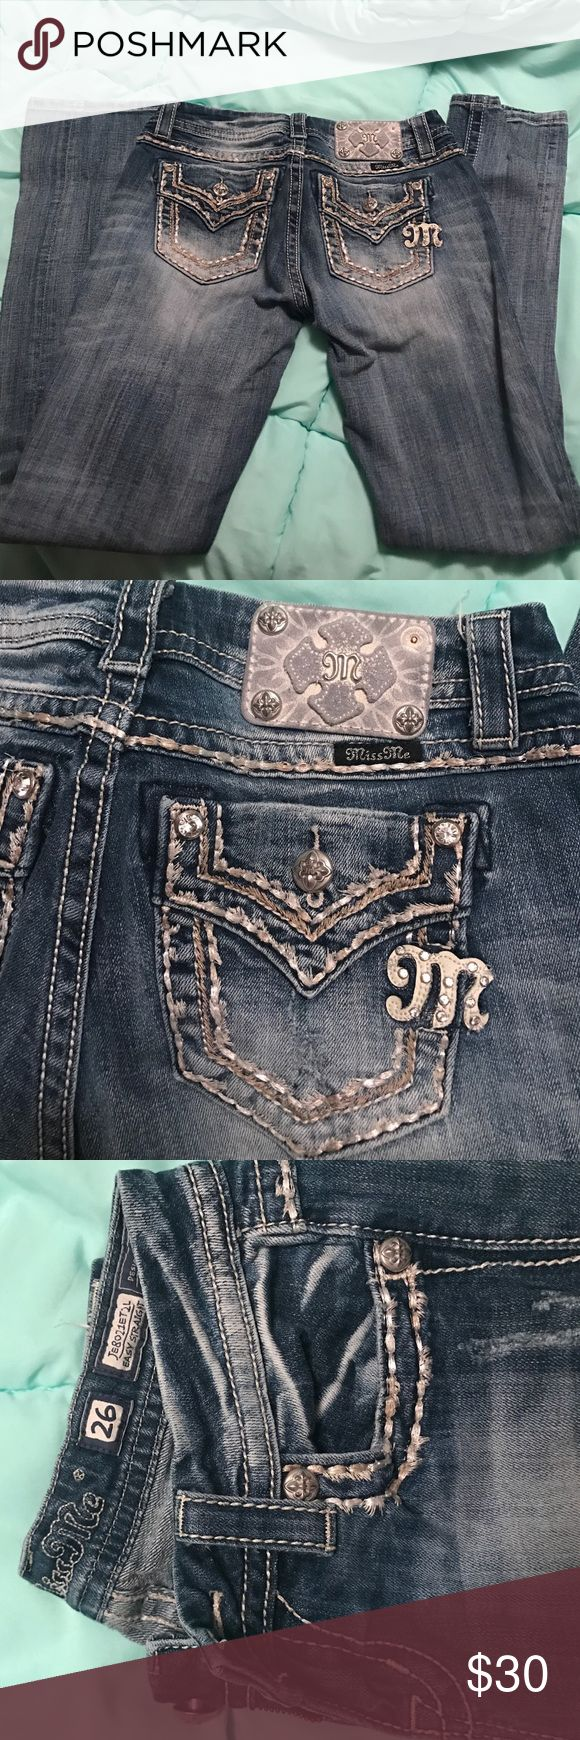 Miss Me jeans Miss me brand jeans! In very good condition other than one of the rivets is missing on the bag which is shown in the pictures. Size 26 Miss Me Jeans Straight Leg